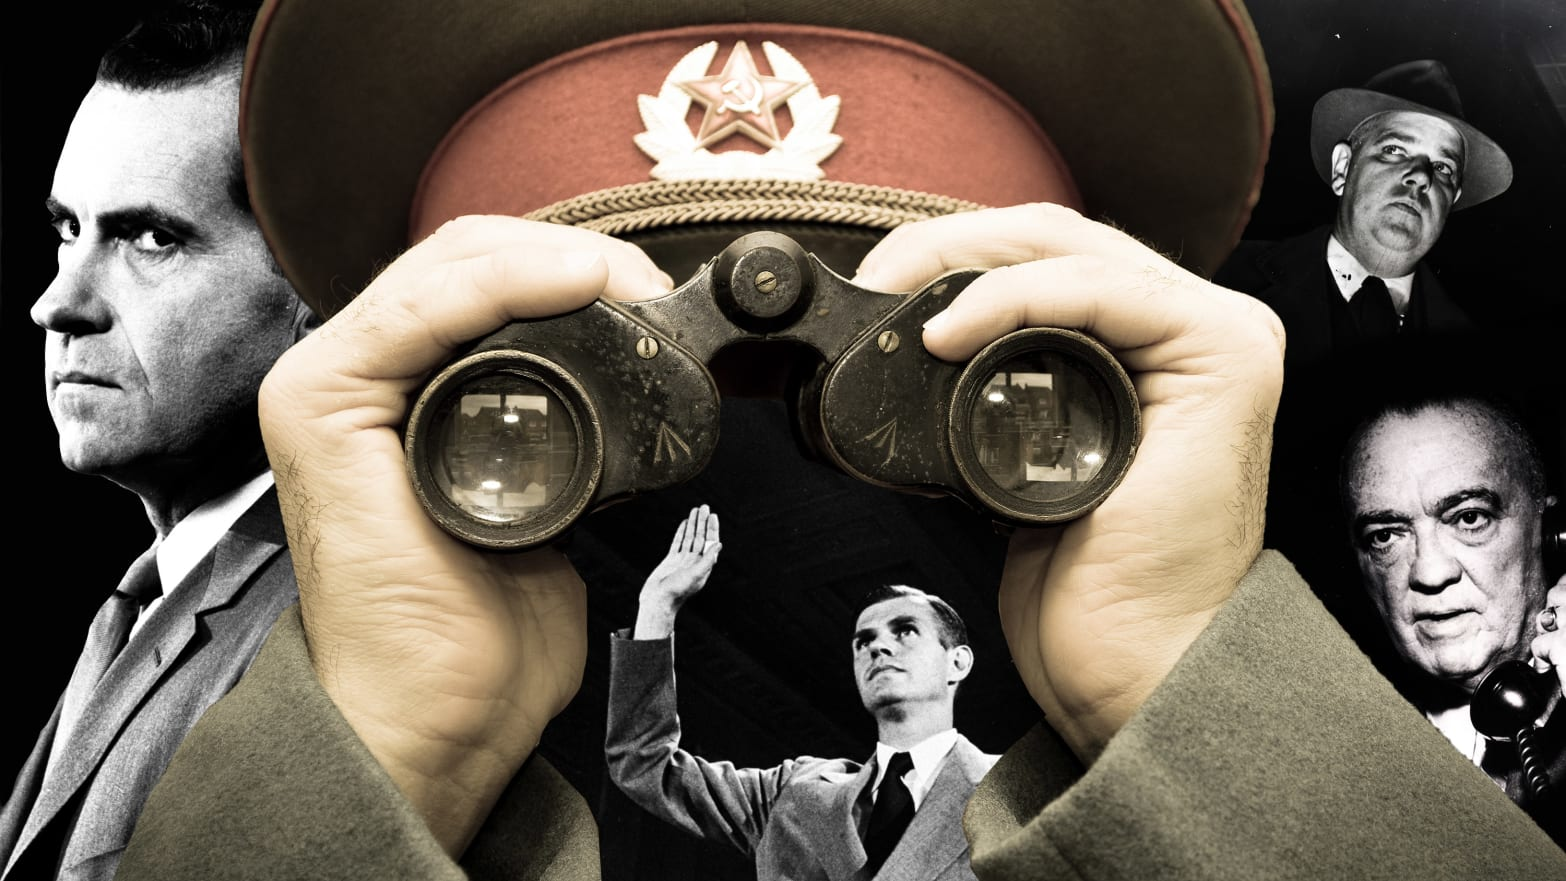 J. Edgar Hoover, Richard Nixon, and Alger Hiss: The Great Russia Witch Hunt (of 1949)